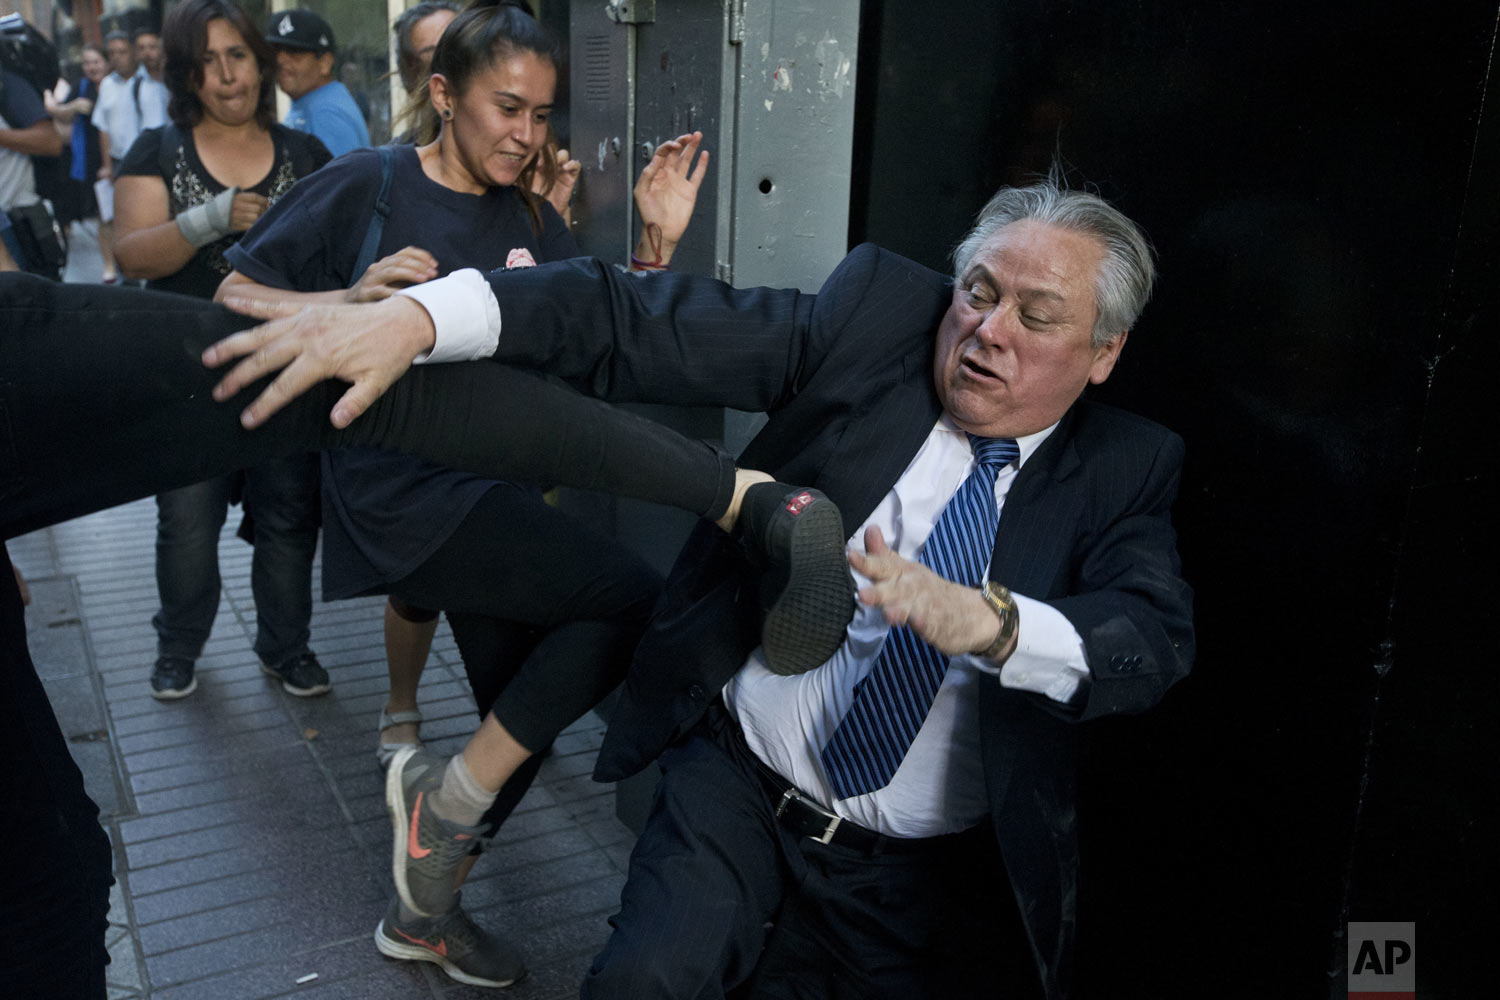 Ivan Arostica, president of Chile's Constitutional Court (TC), is kicked by a protester as he leaves the court which listened to arguments in favor and against conditional freedom for those convicted of human rights crimes in Santiago, Chile, on Wednesday, Dec. 19, 2018. Protesters fear a ruling in favor could benefit the prisoners of Punta Peuco, a prison for state agents convicted of murder during the dictatorship of Augusto Pinochet (1973-1990). (AP Photo/Esteban Felix)